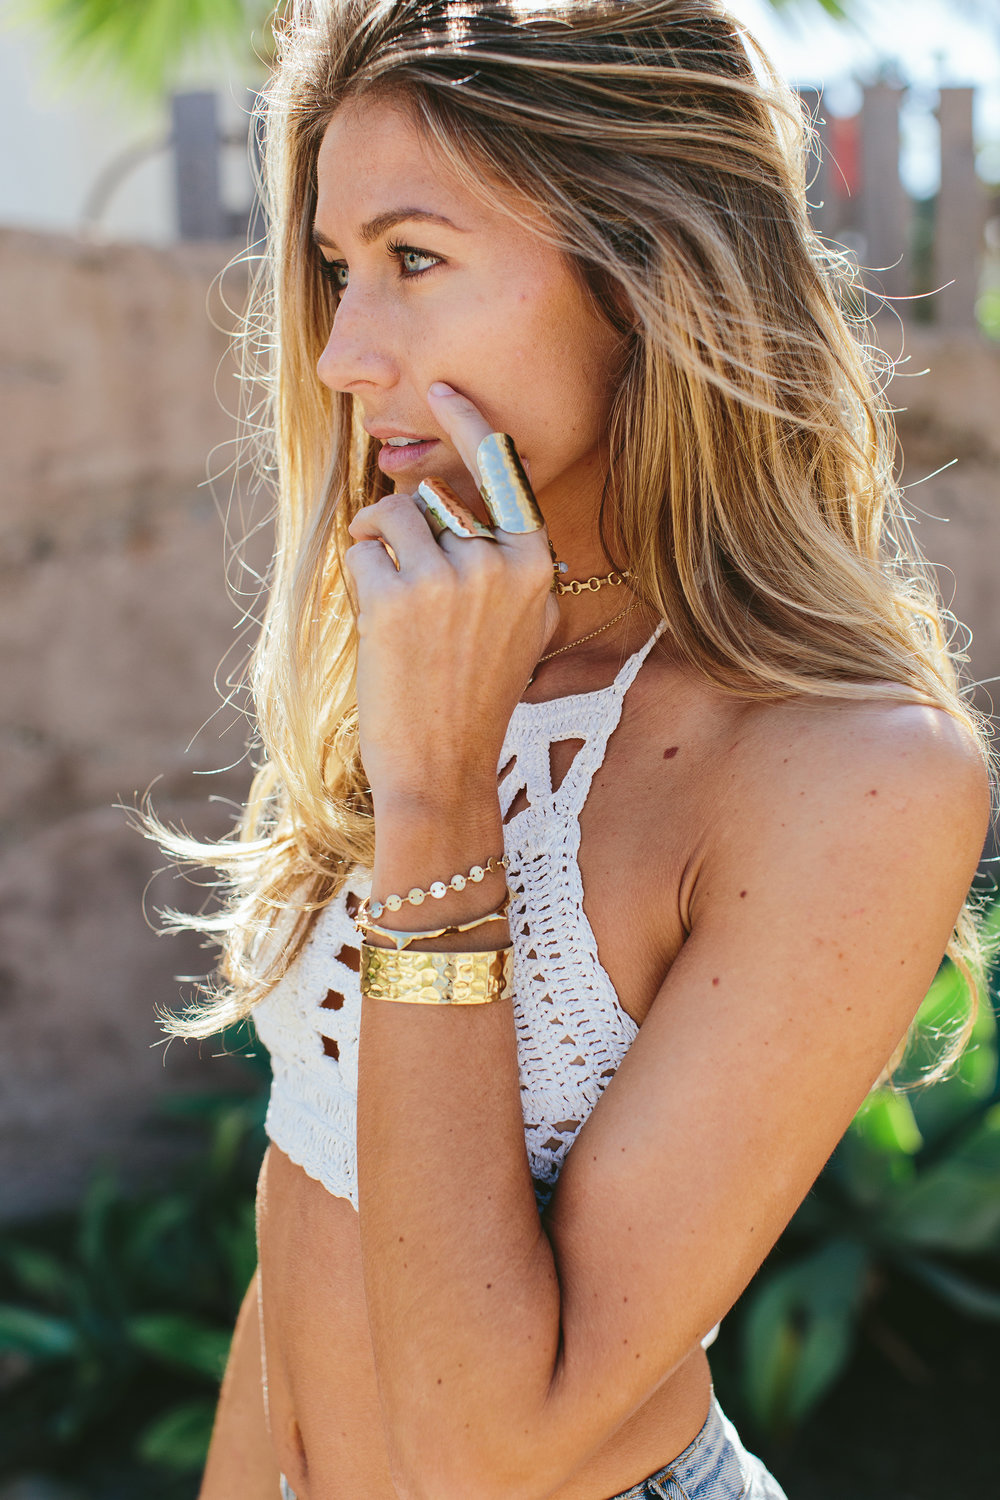 And adding in gold bangles and rings is an amazing touch for spring style.